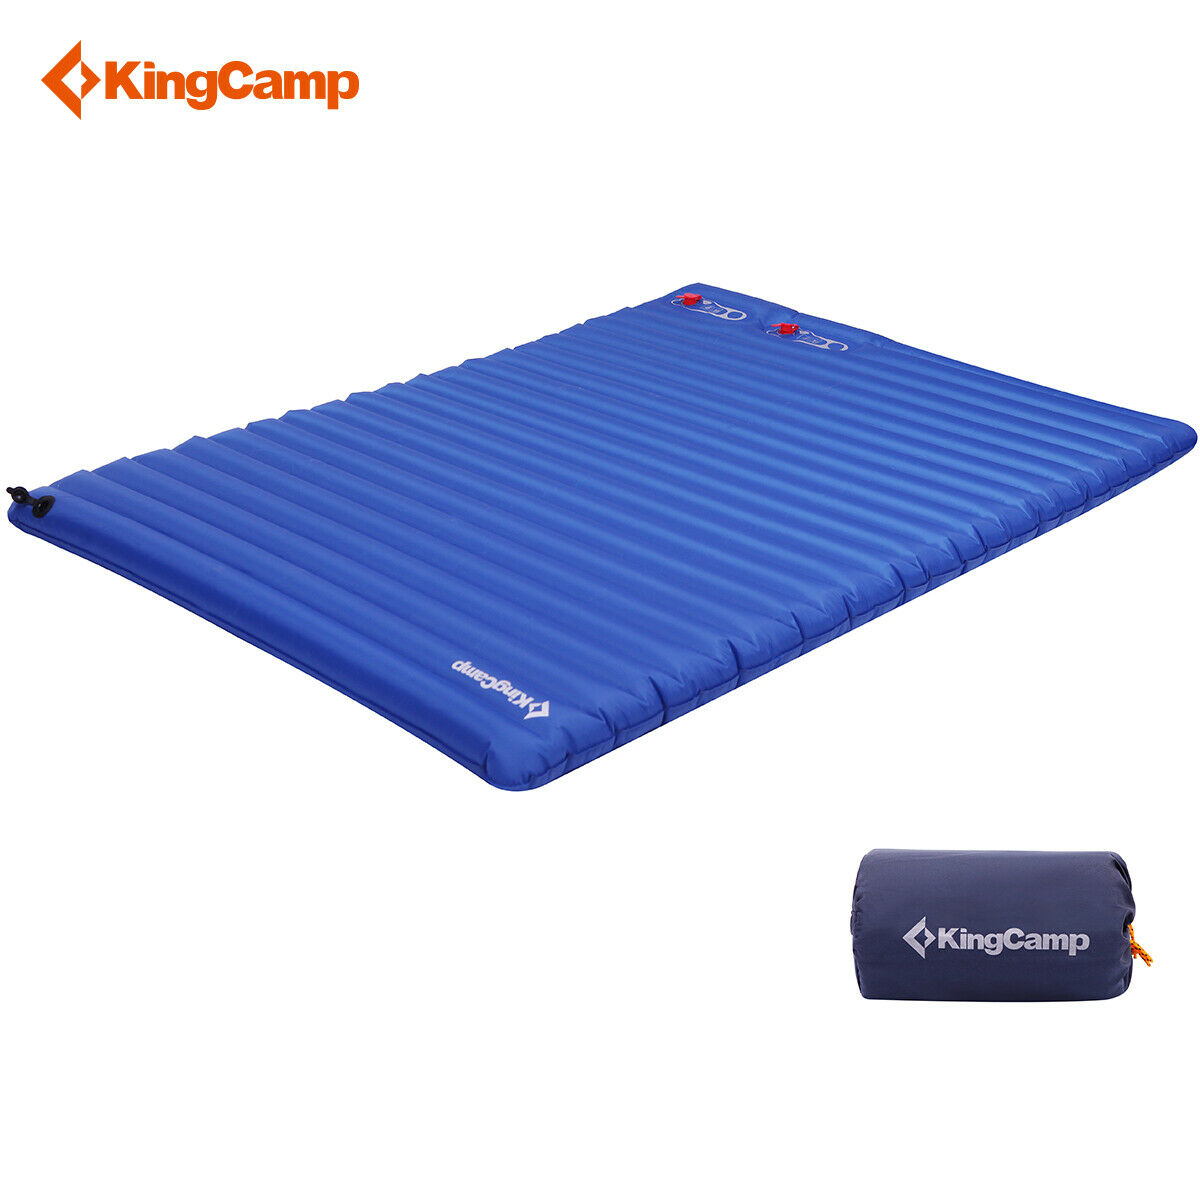 KingCamp Airbed 2-Person Camping Sleeping Mat Pad  Bed Outdoor Casual Mattress